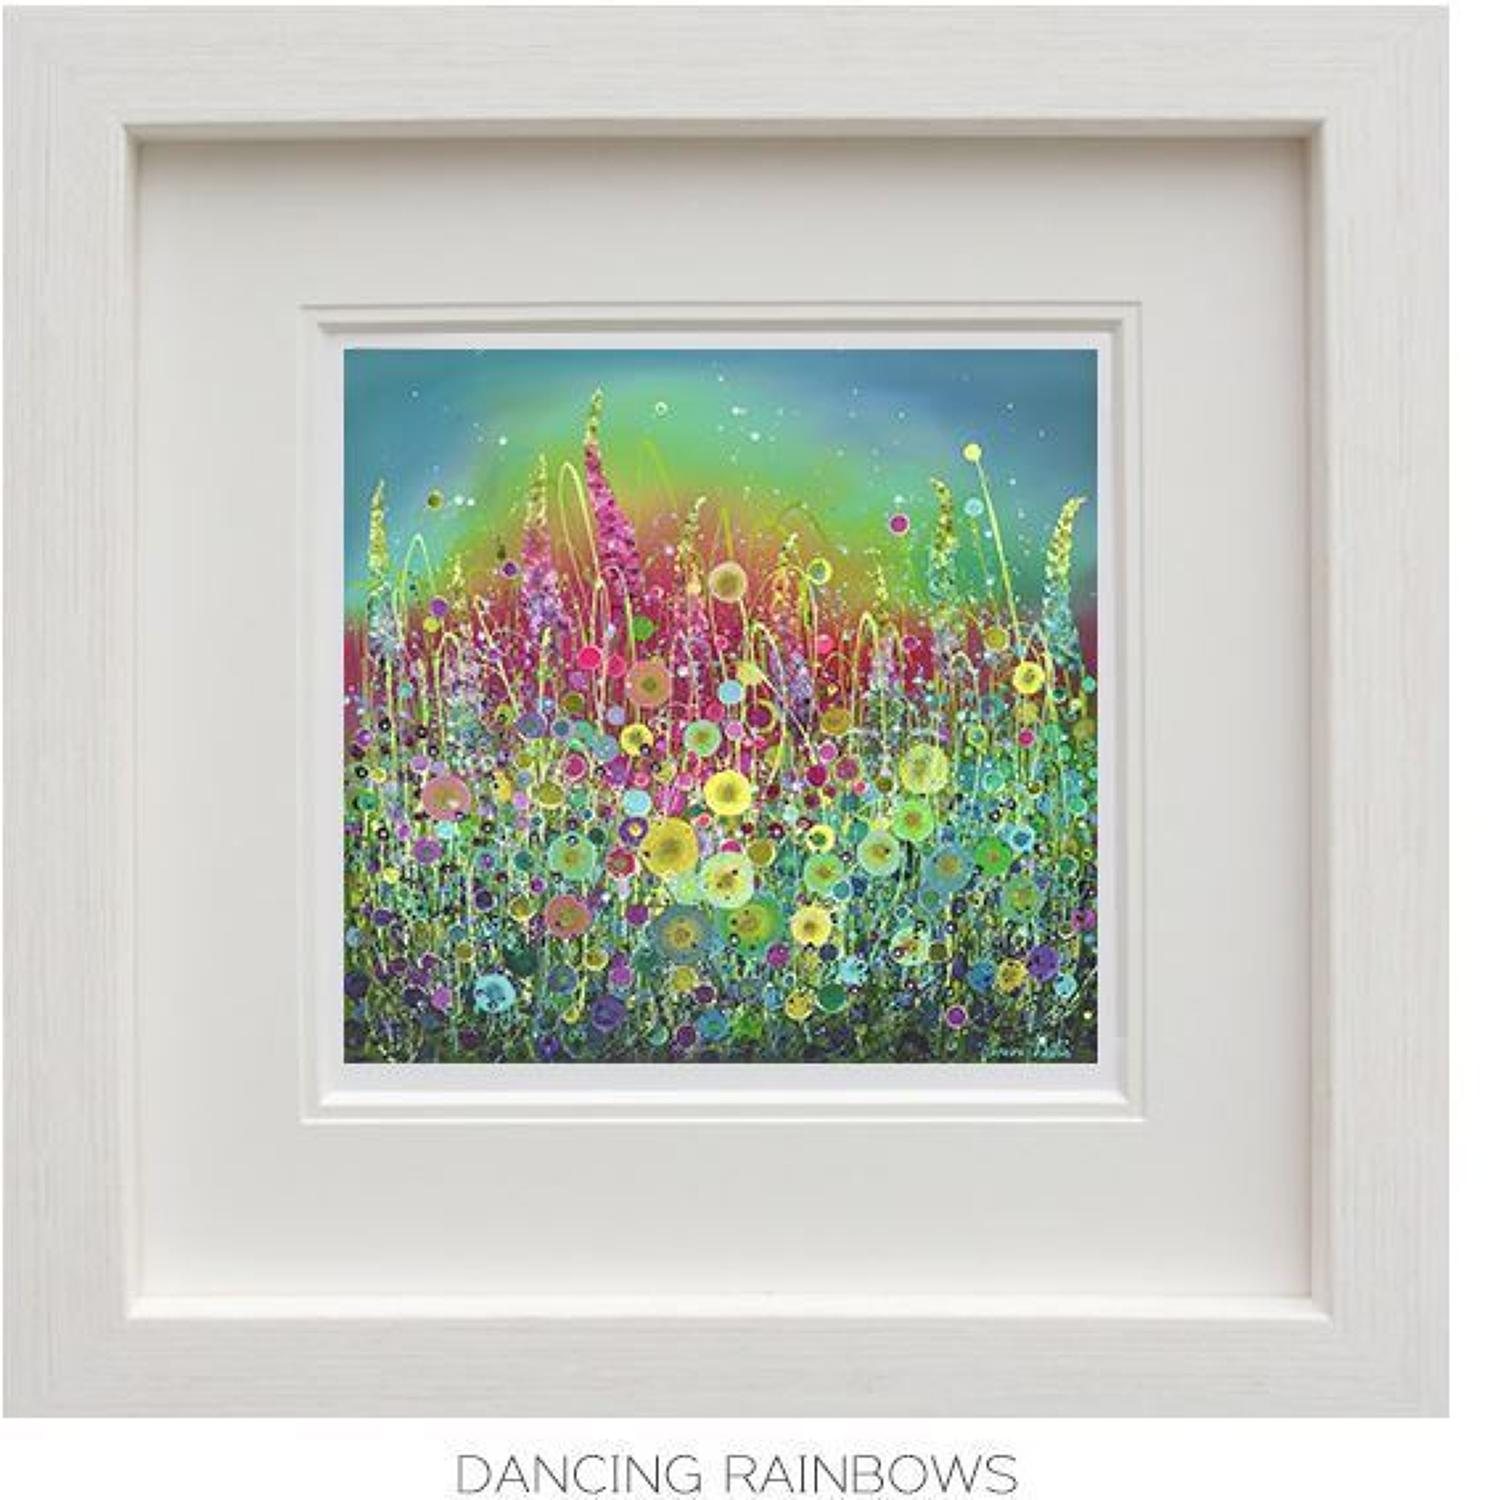 Dancing Rainbows by Leanne Christie